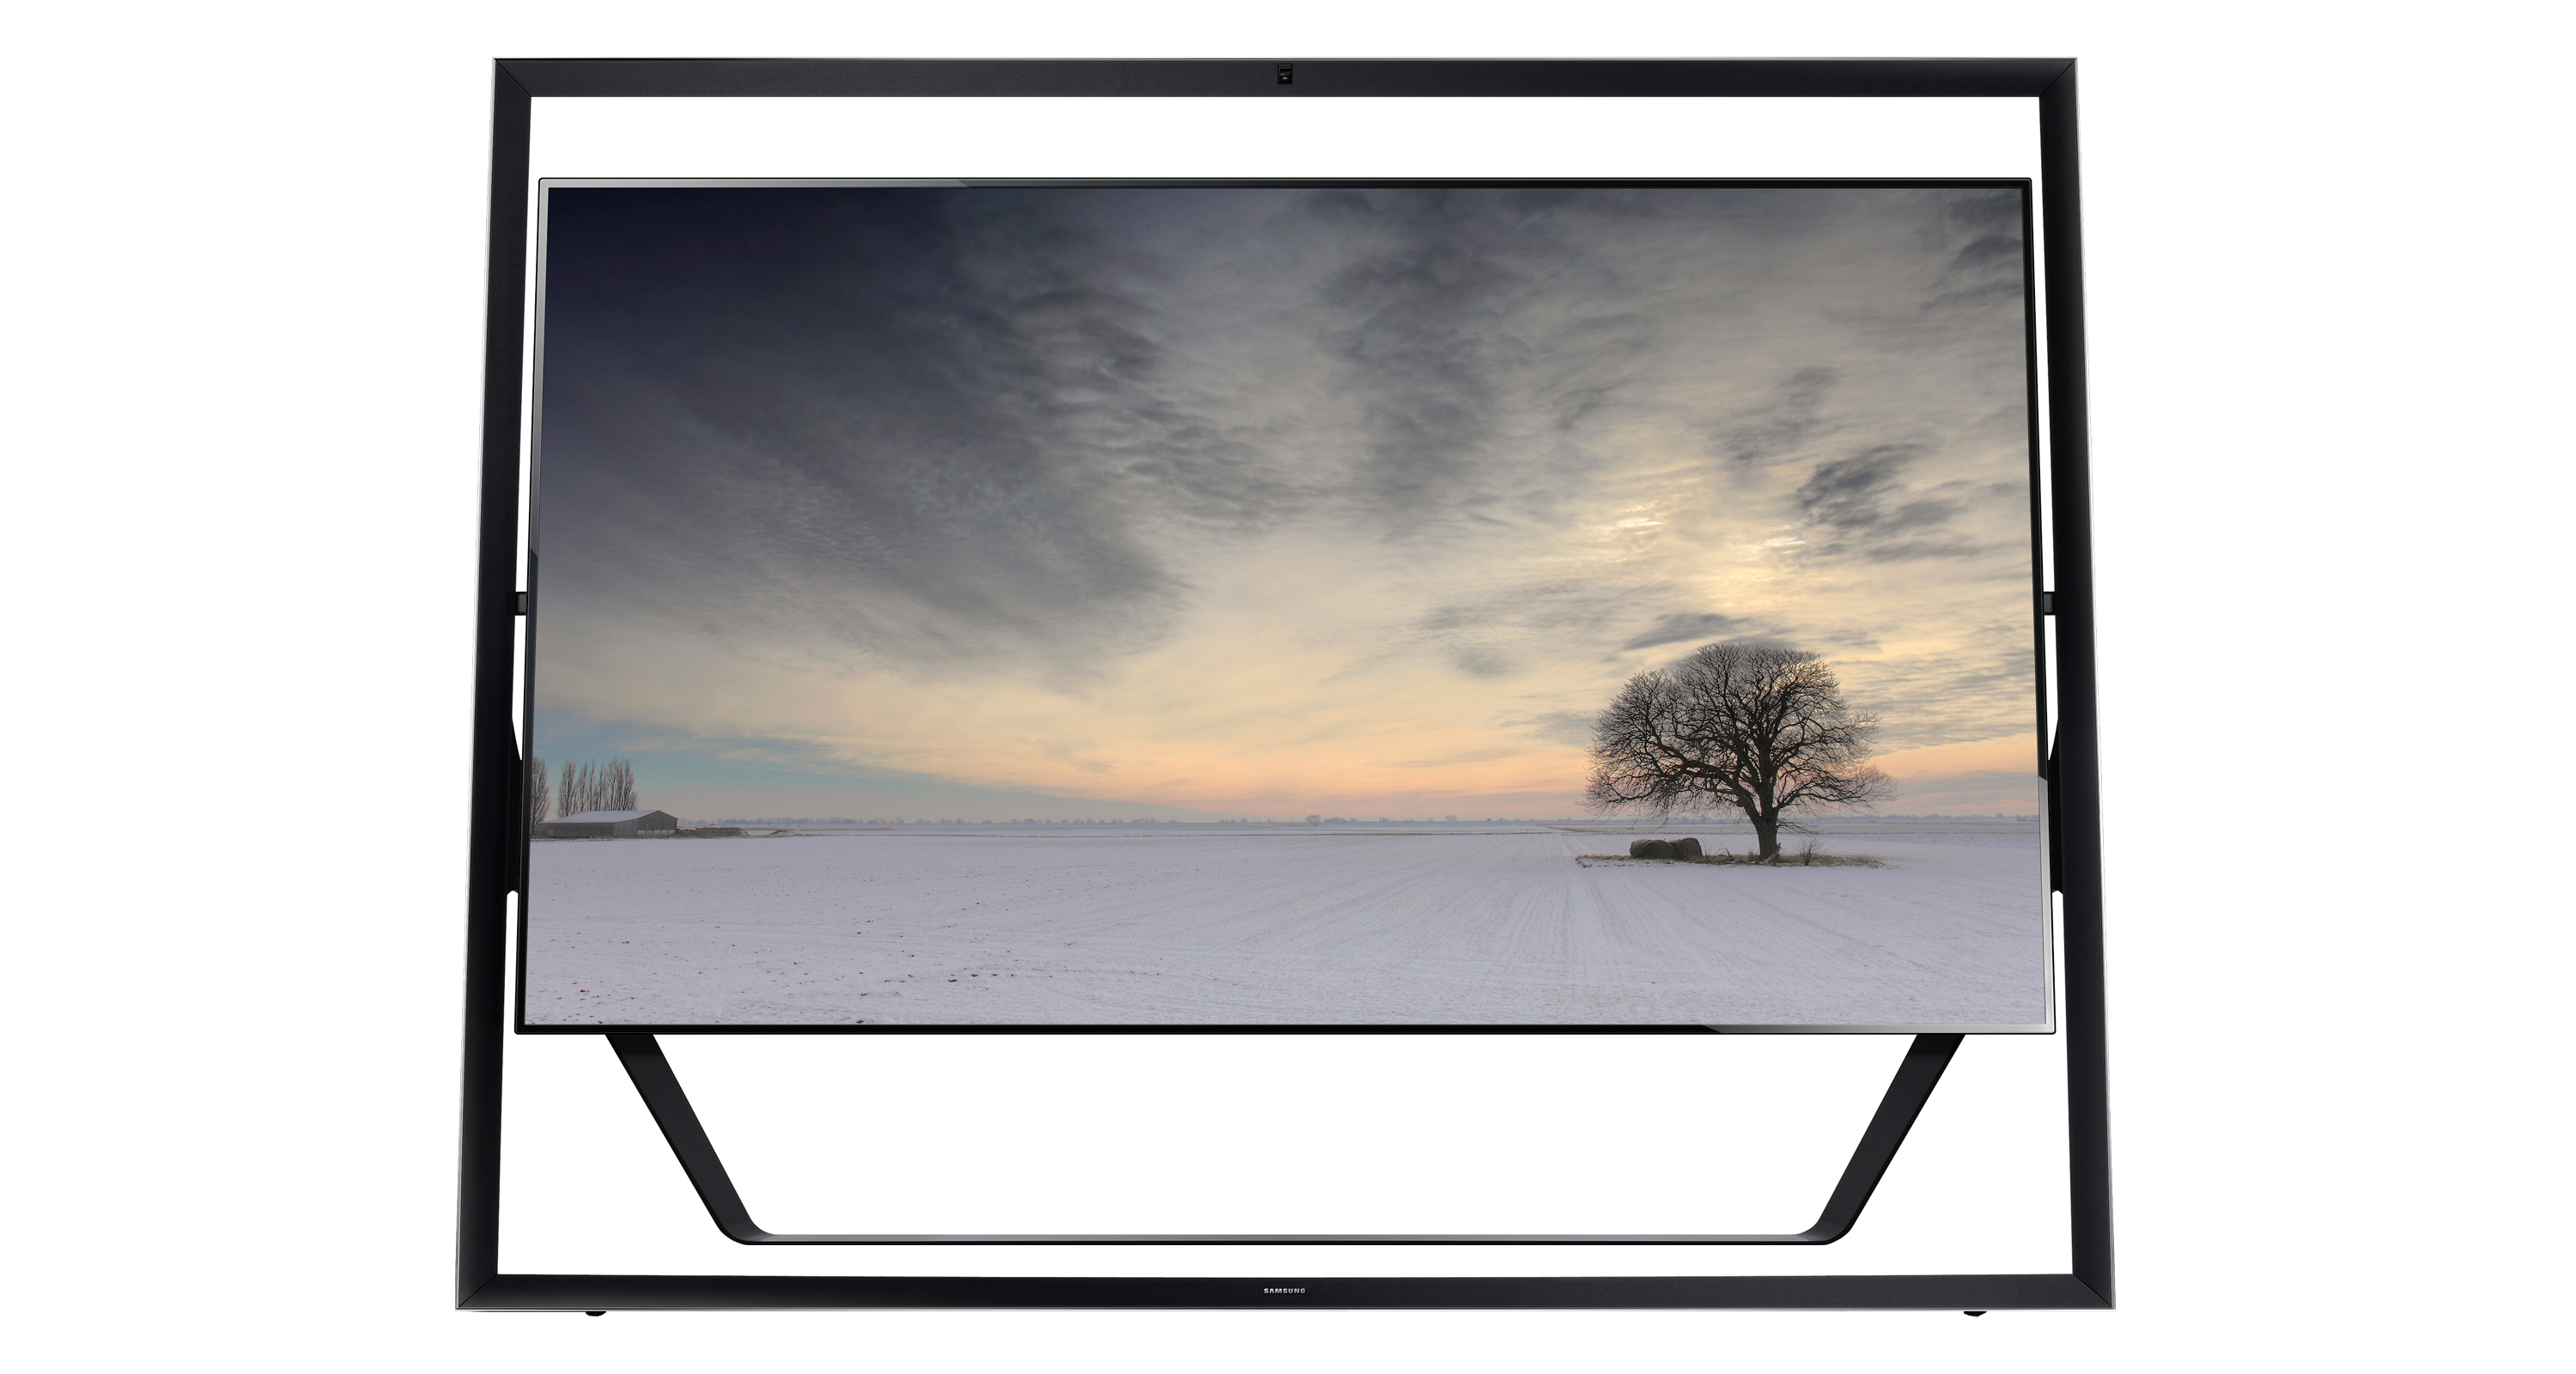 UltraHD TV